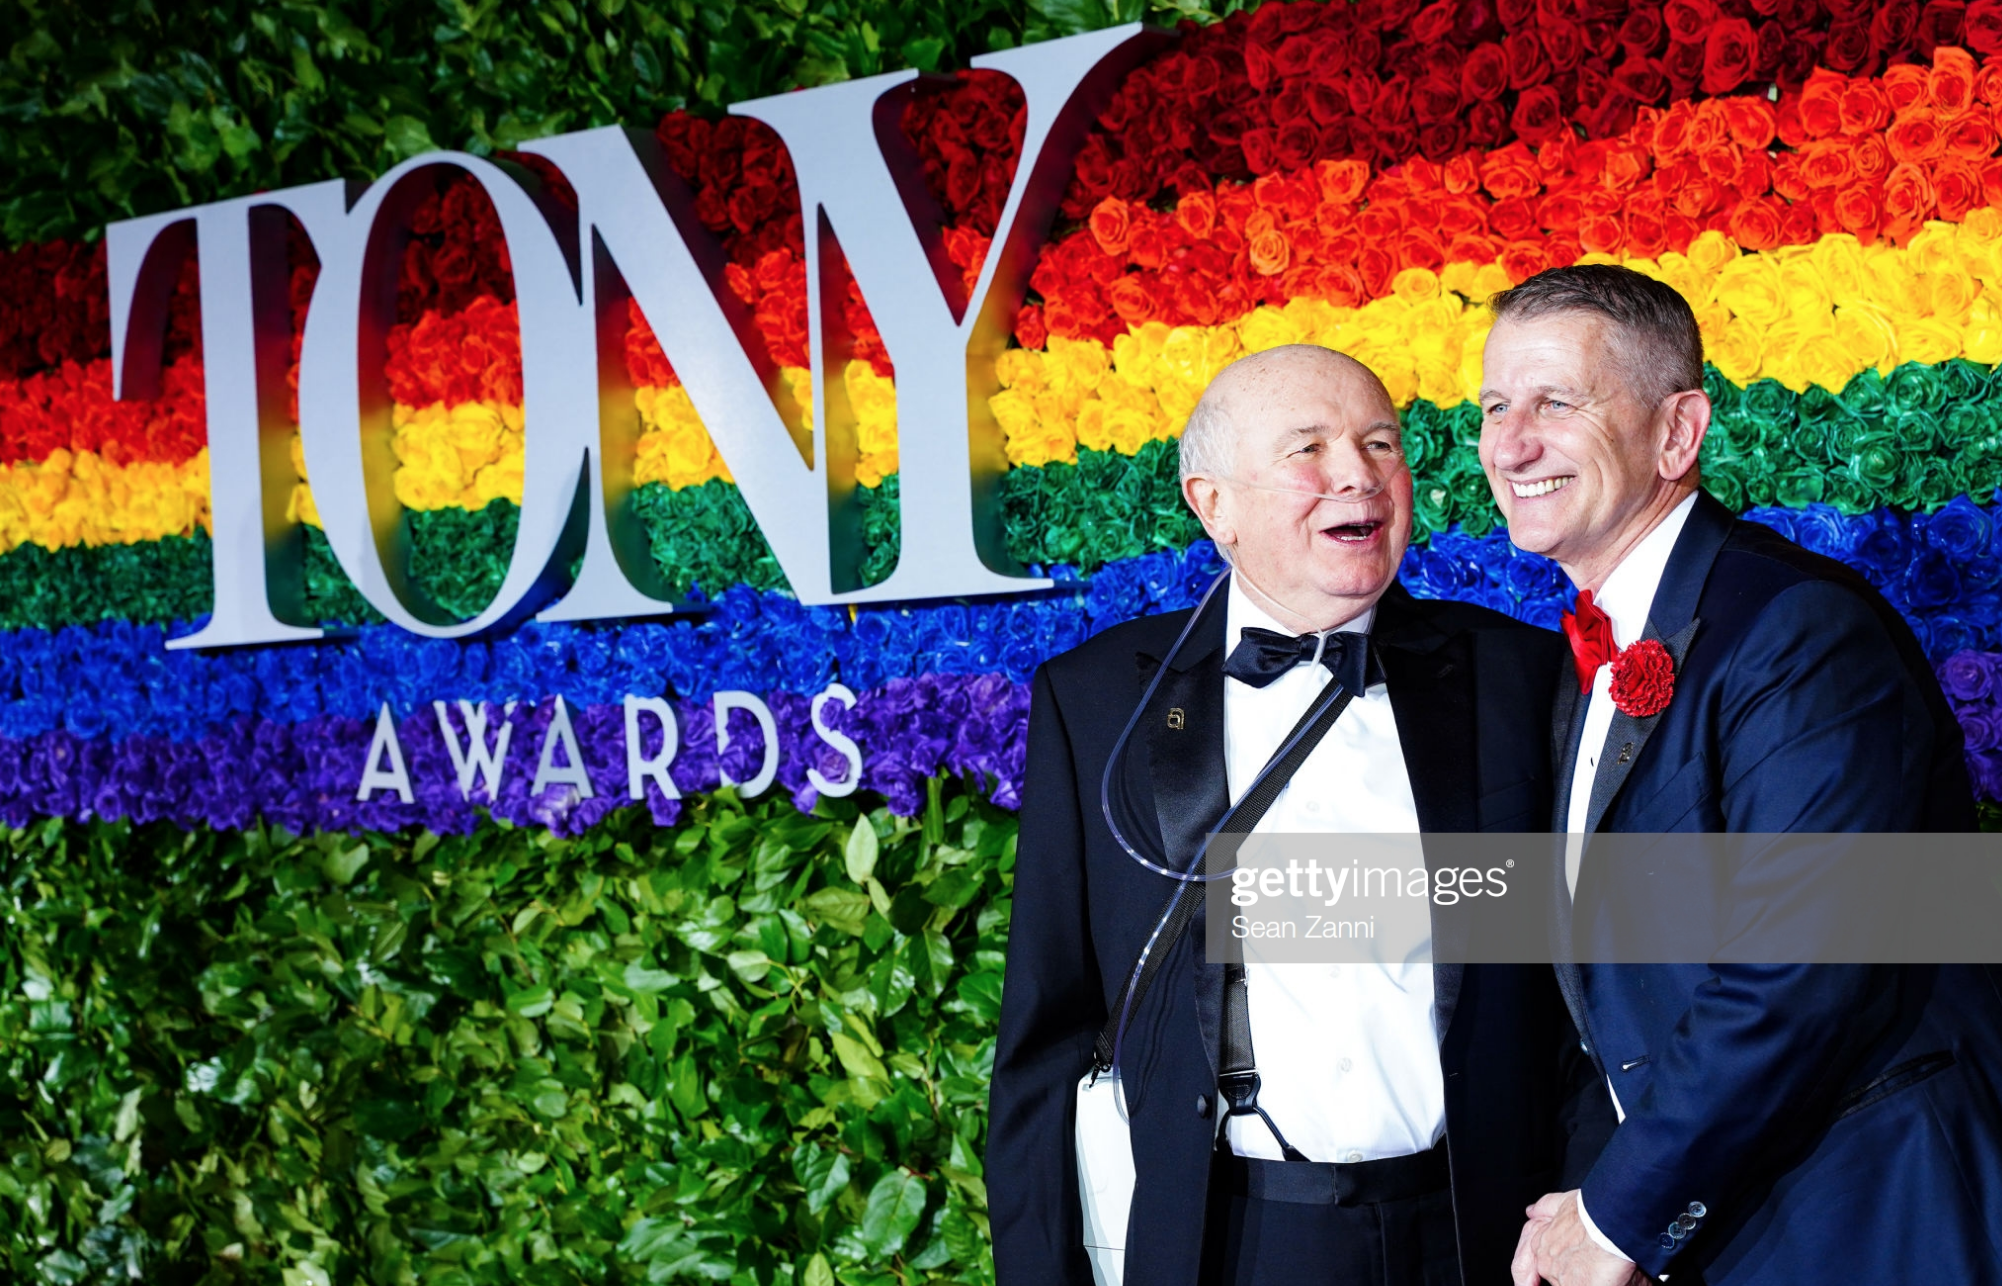 Terrence McNally and Tom Kirdahy attend the 2019 Tony Awards at Radio City Music Hall on June 9, 2019 in New York City - Photo by Taylor Hill for FilmMagic